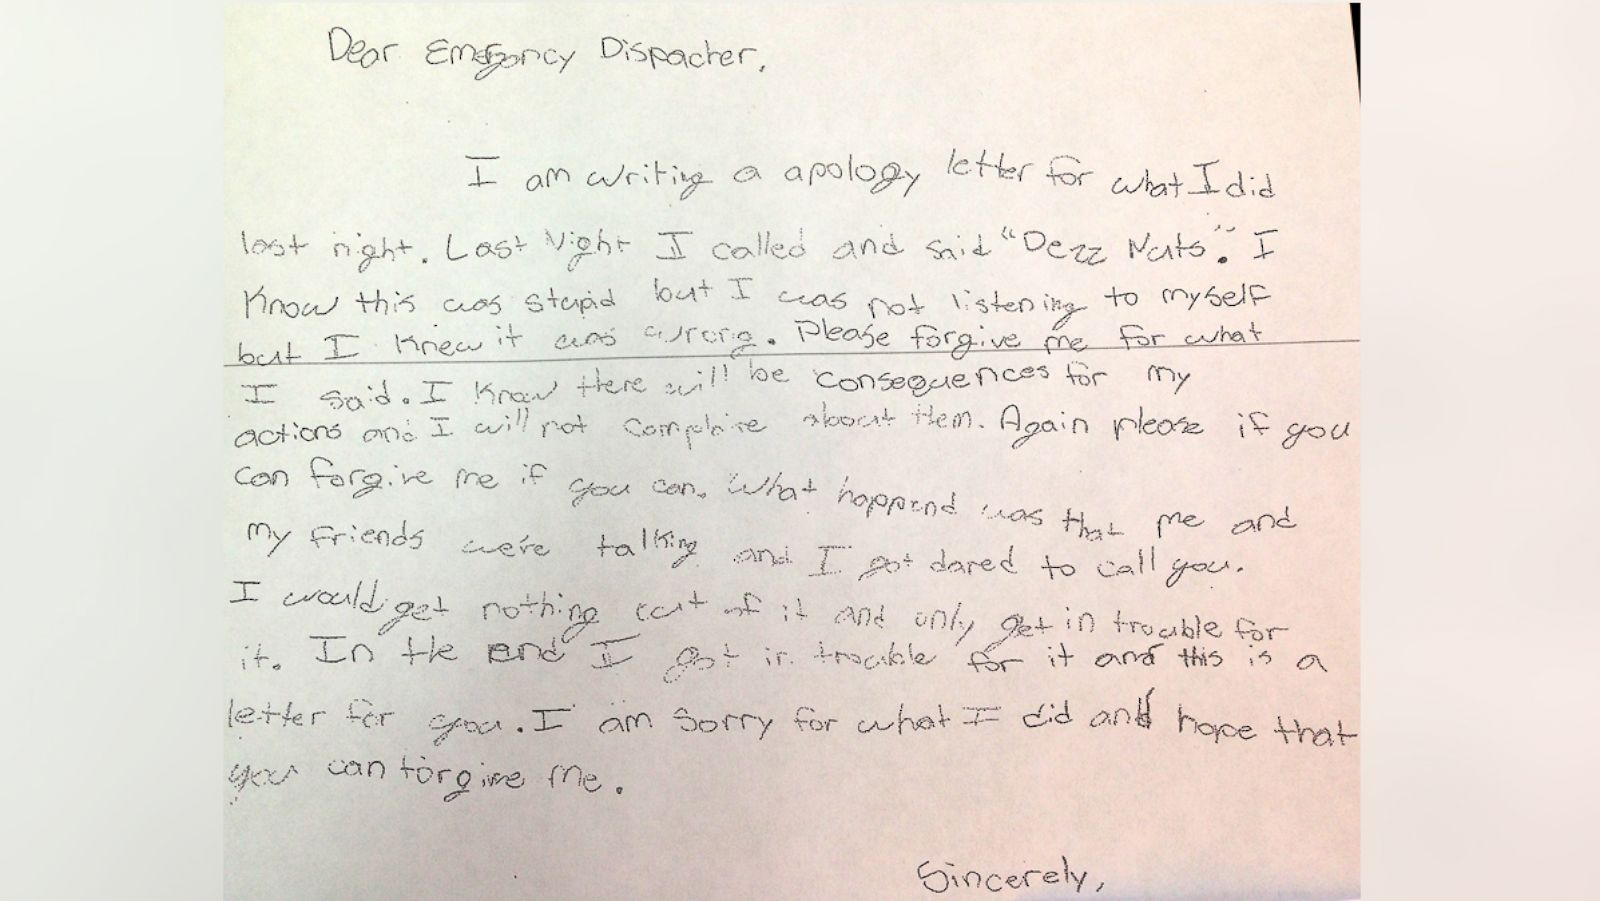 Georgia Boy Writes Apology Note to Police After 911 Prank Call - ABC